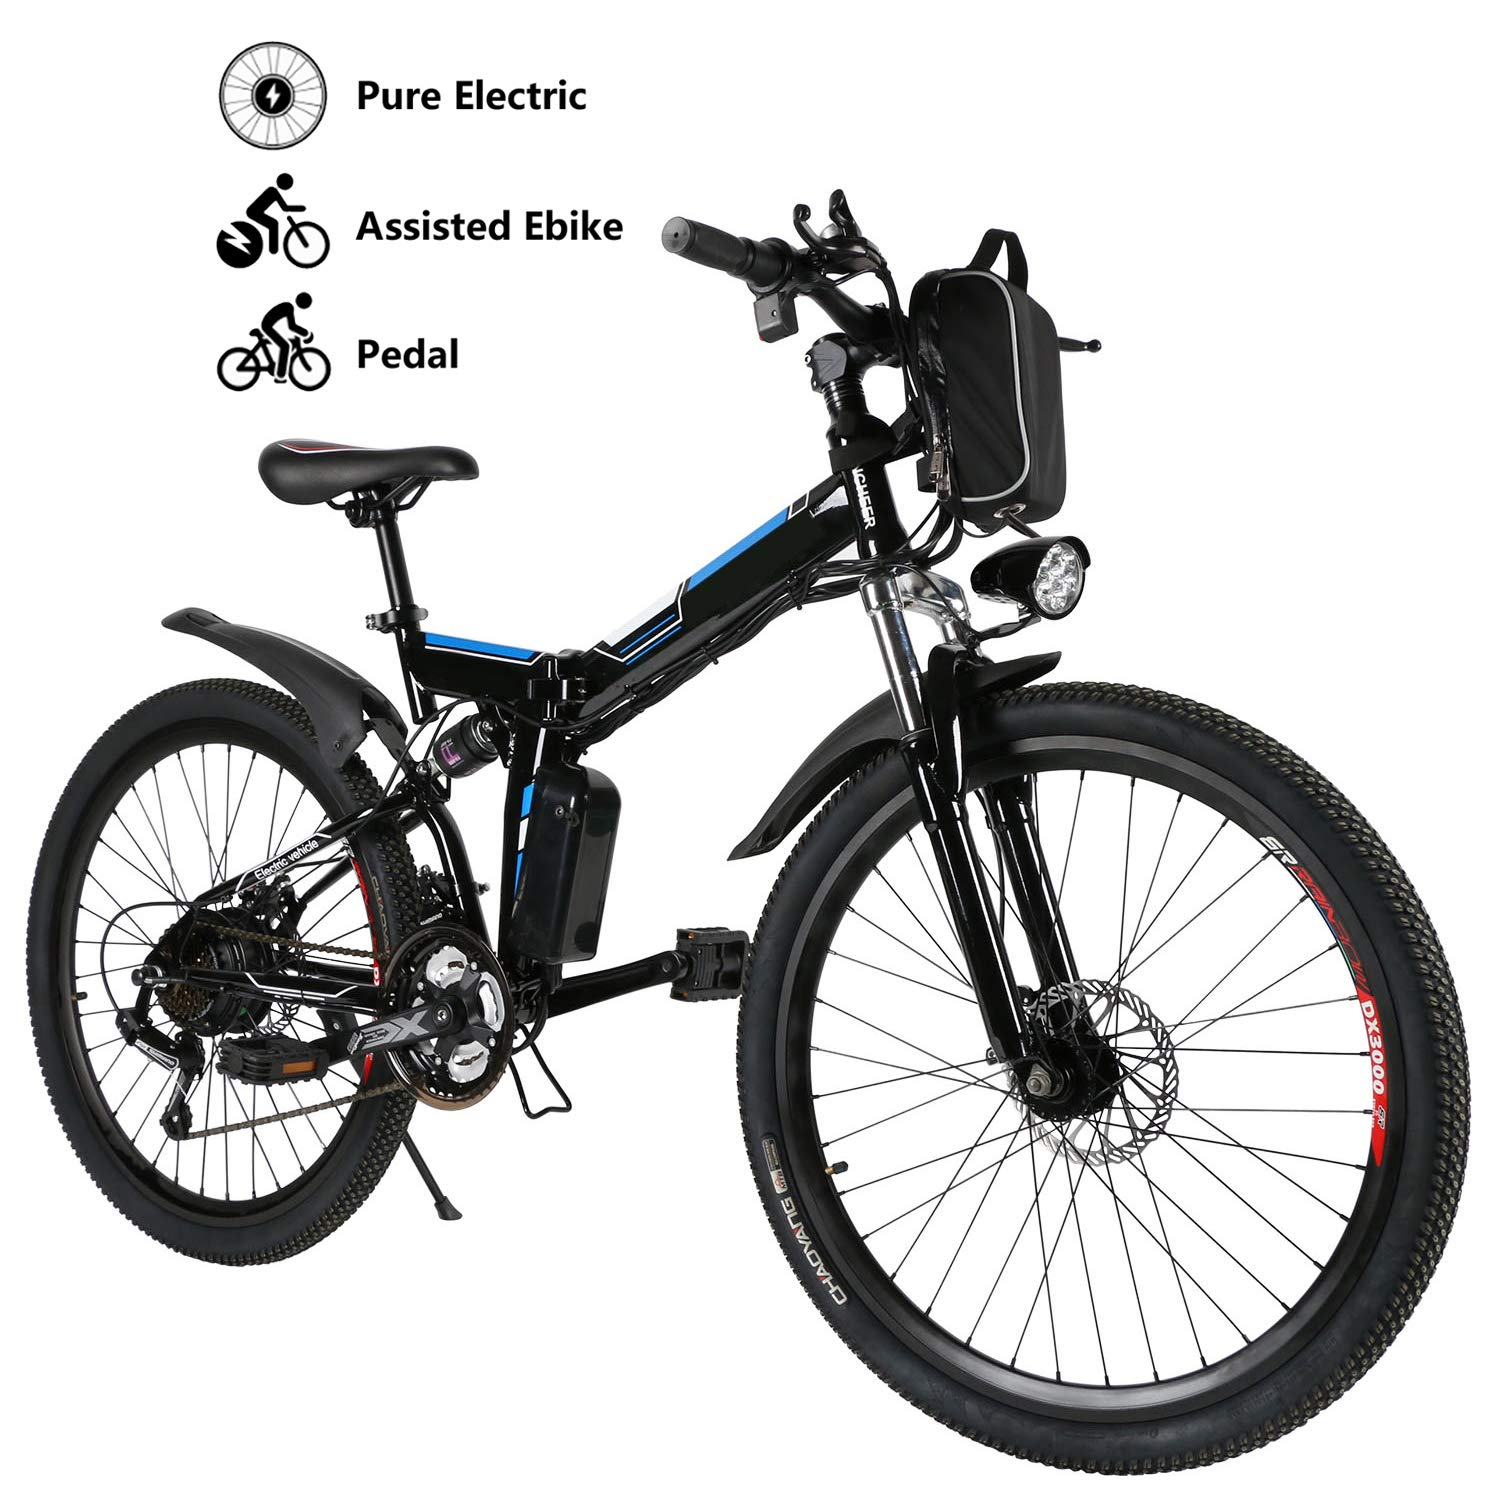 Yiilove Electric Bicycle 26 Electric Mountain Bike for Adult with 36V Lithium-Ion Battery Ebike 250W Powerful Motor 21 Speed